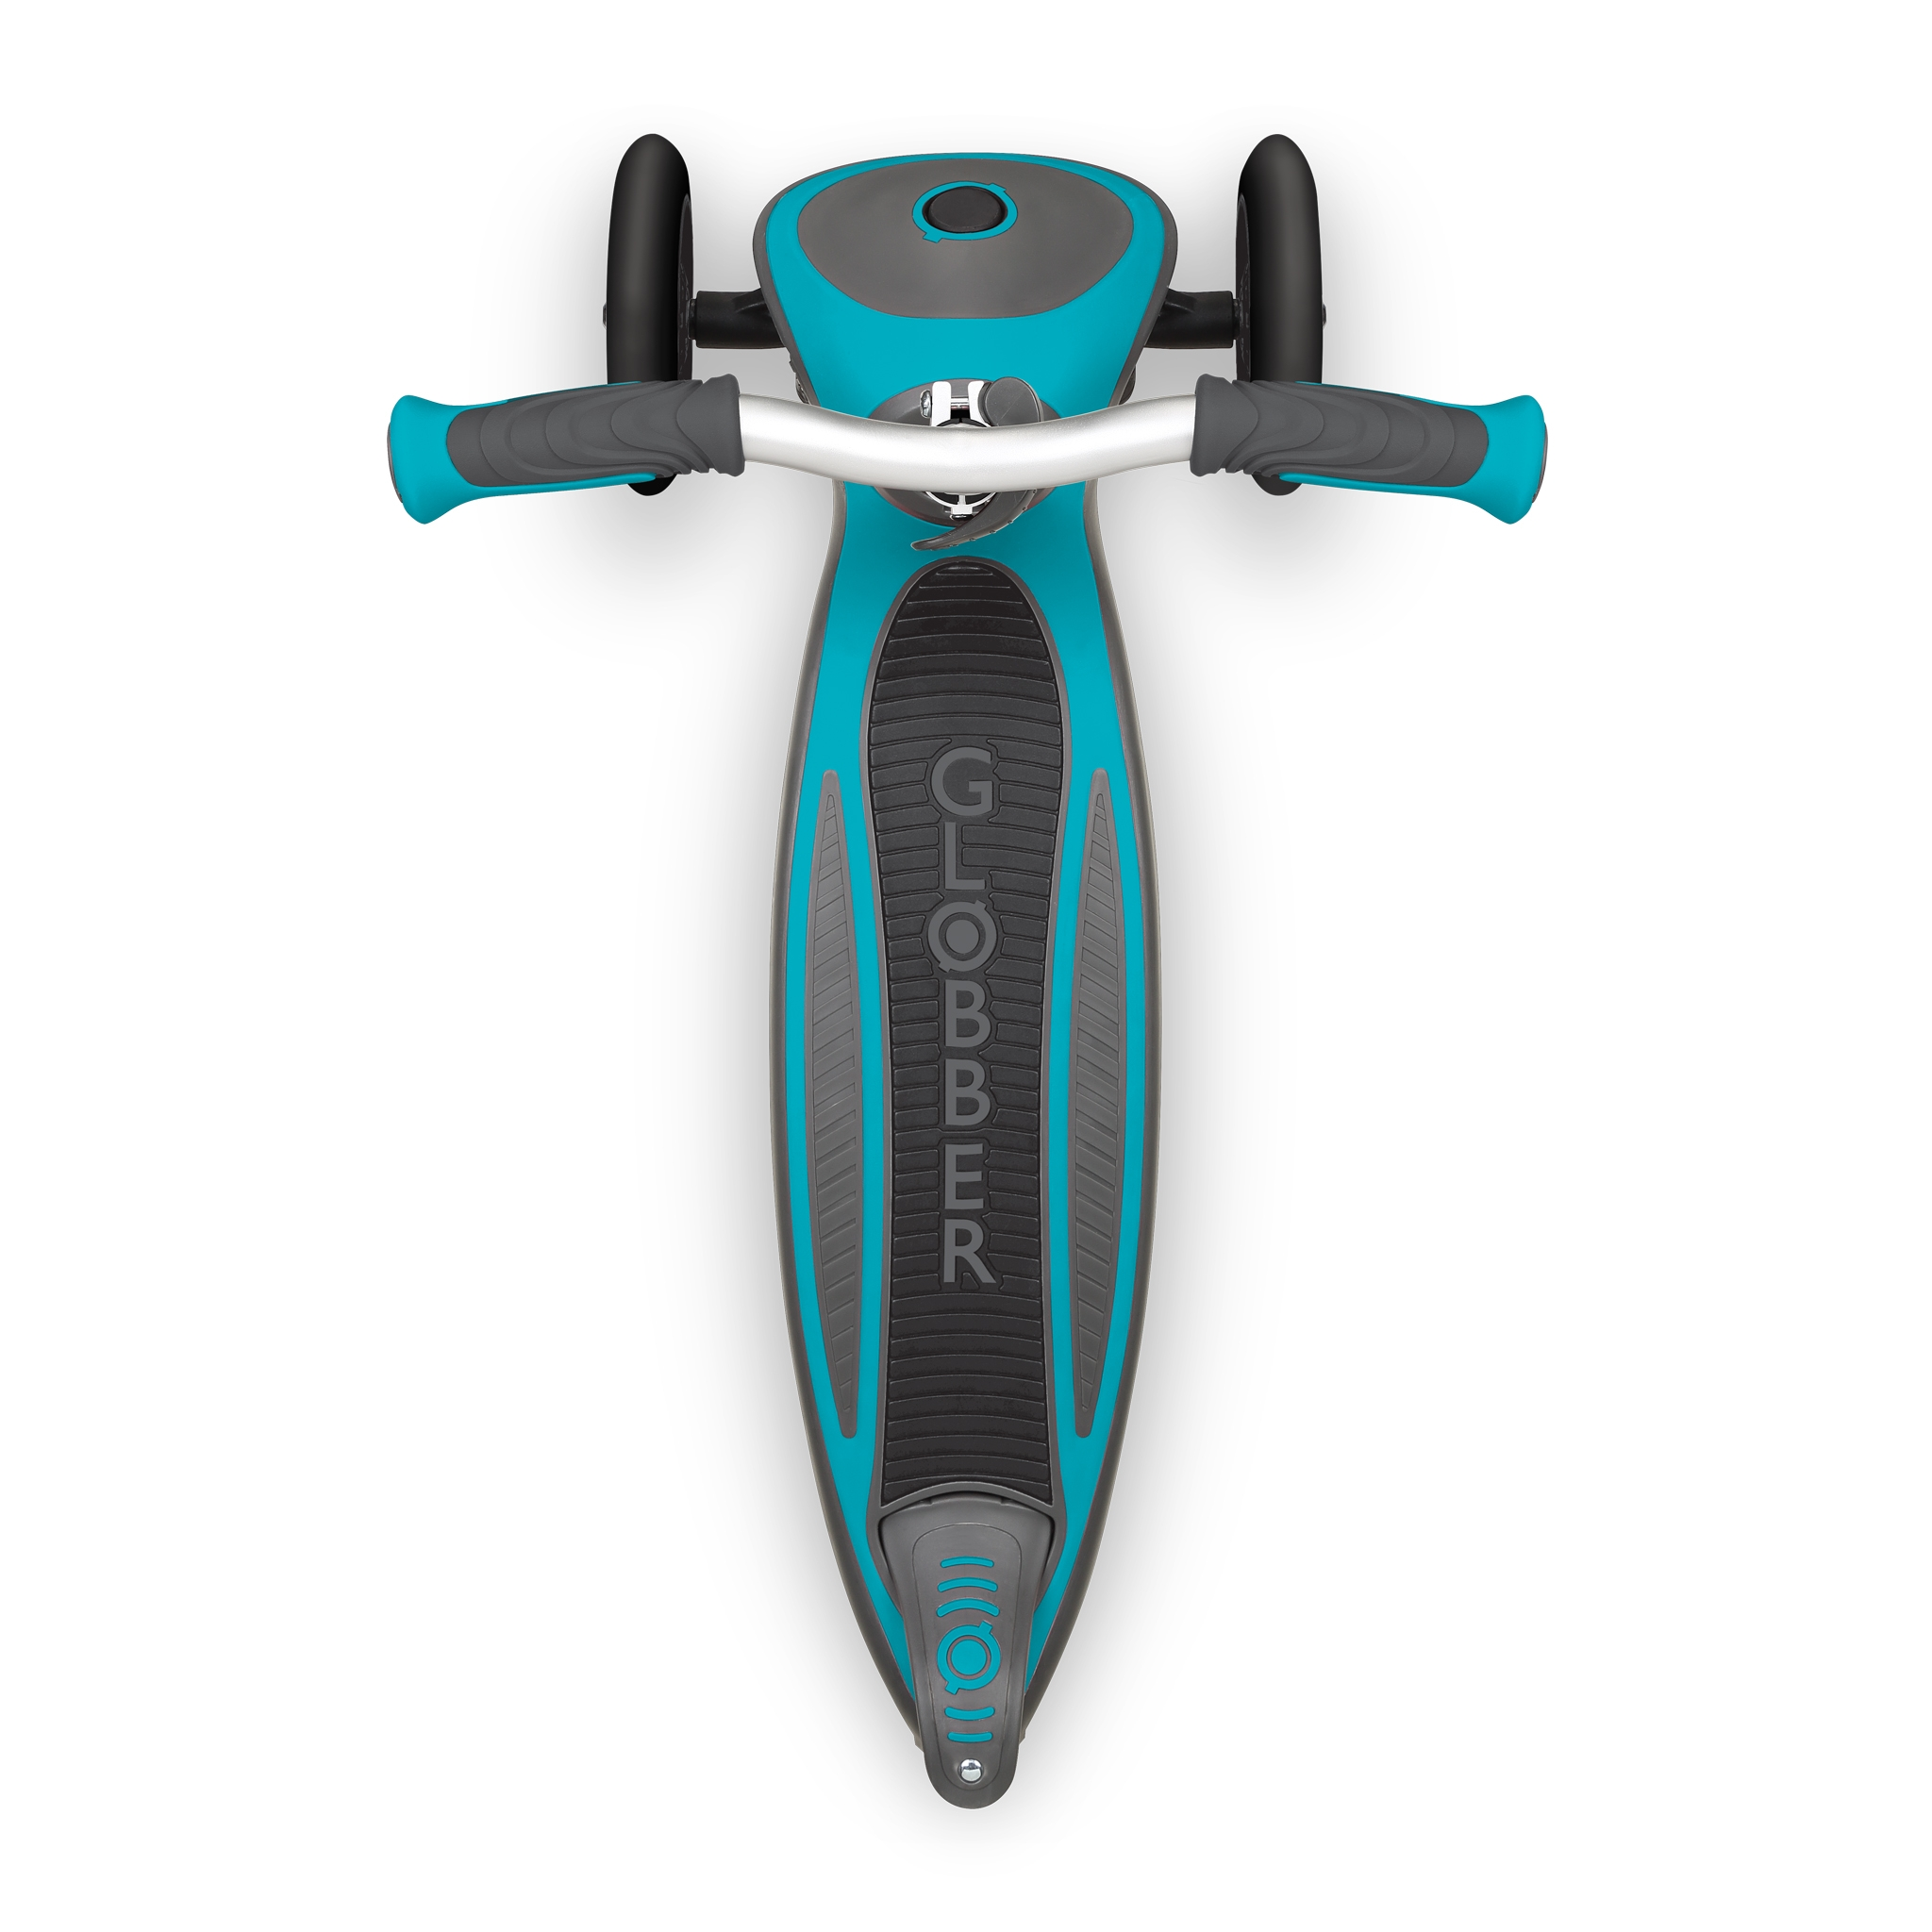 Globber-MASTER-3-wheel-foldable-scooter-for-kids-with-extra-wide-anti-slip-deck-for-comfortable-rides_teal 0